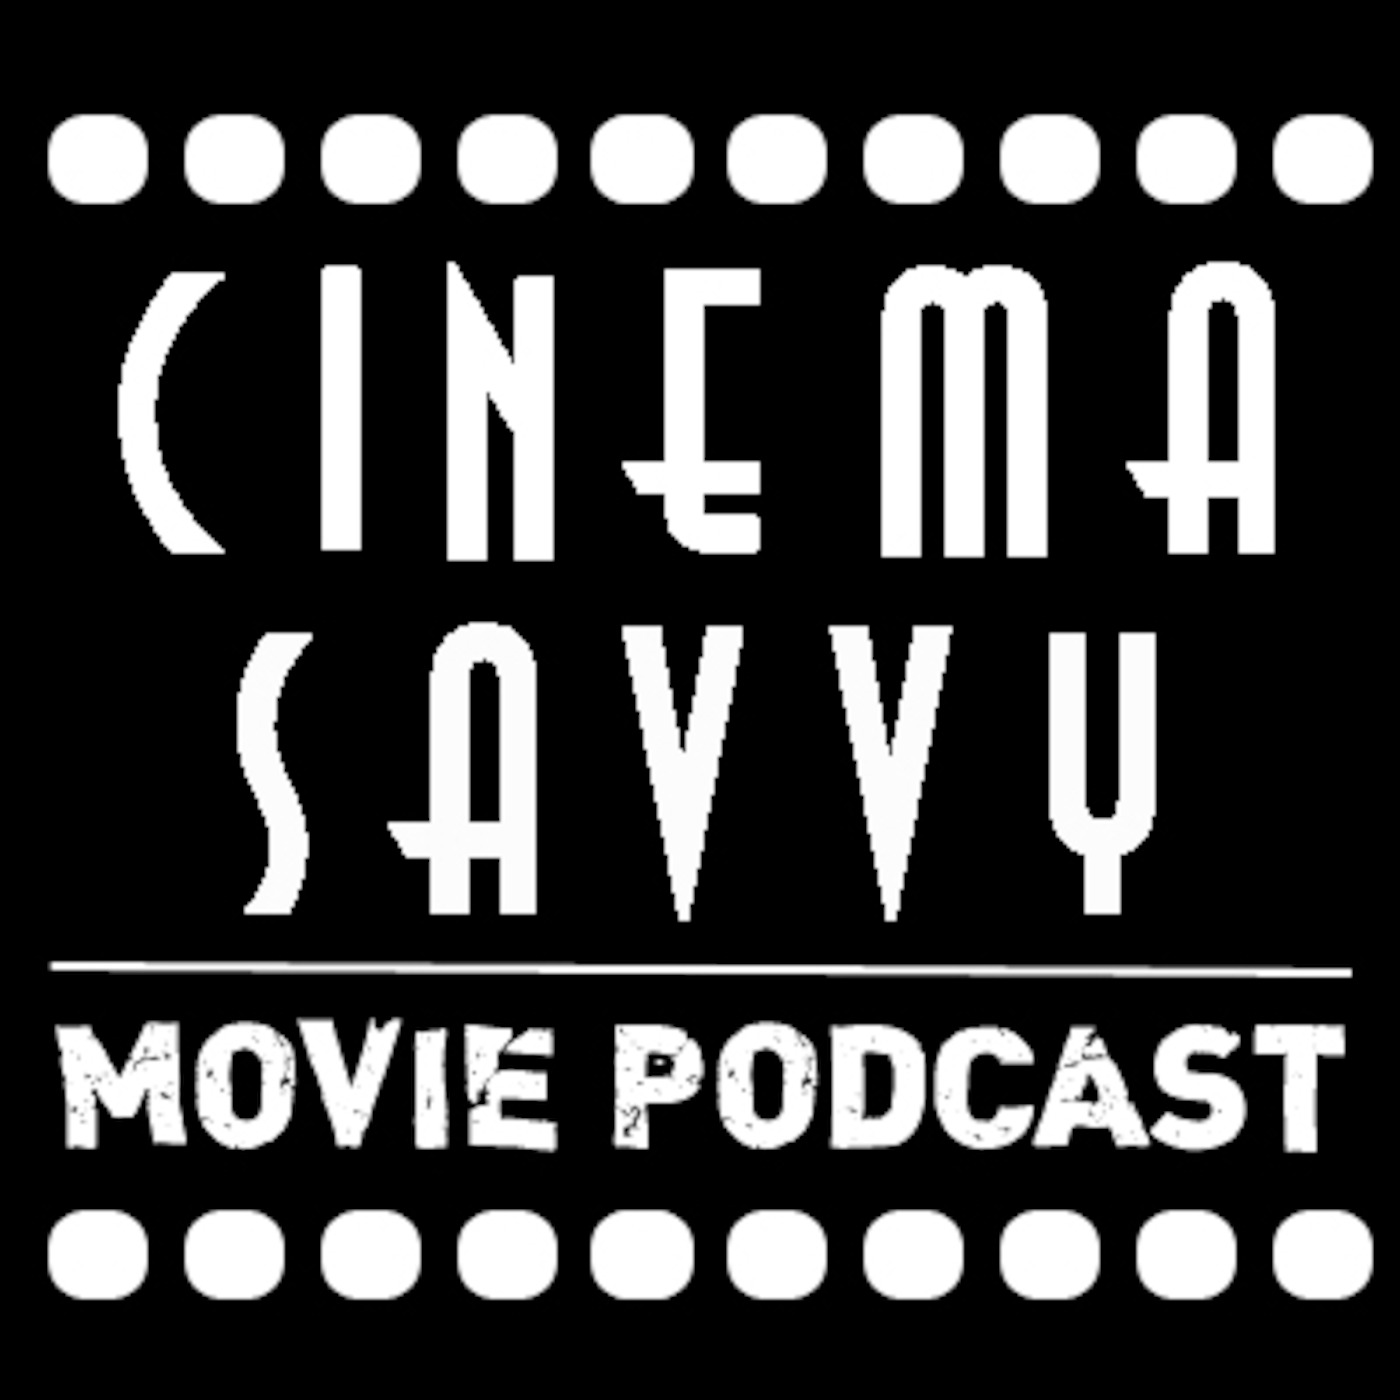 Cinema Savvy Movie Podcast